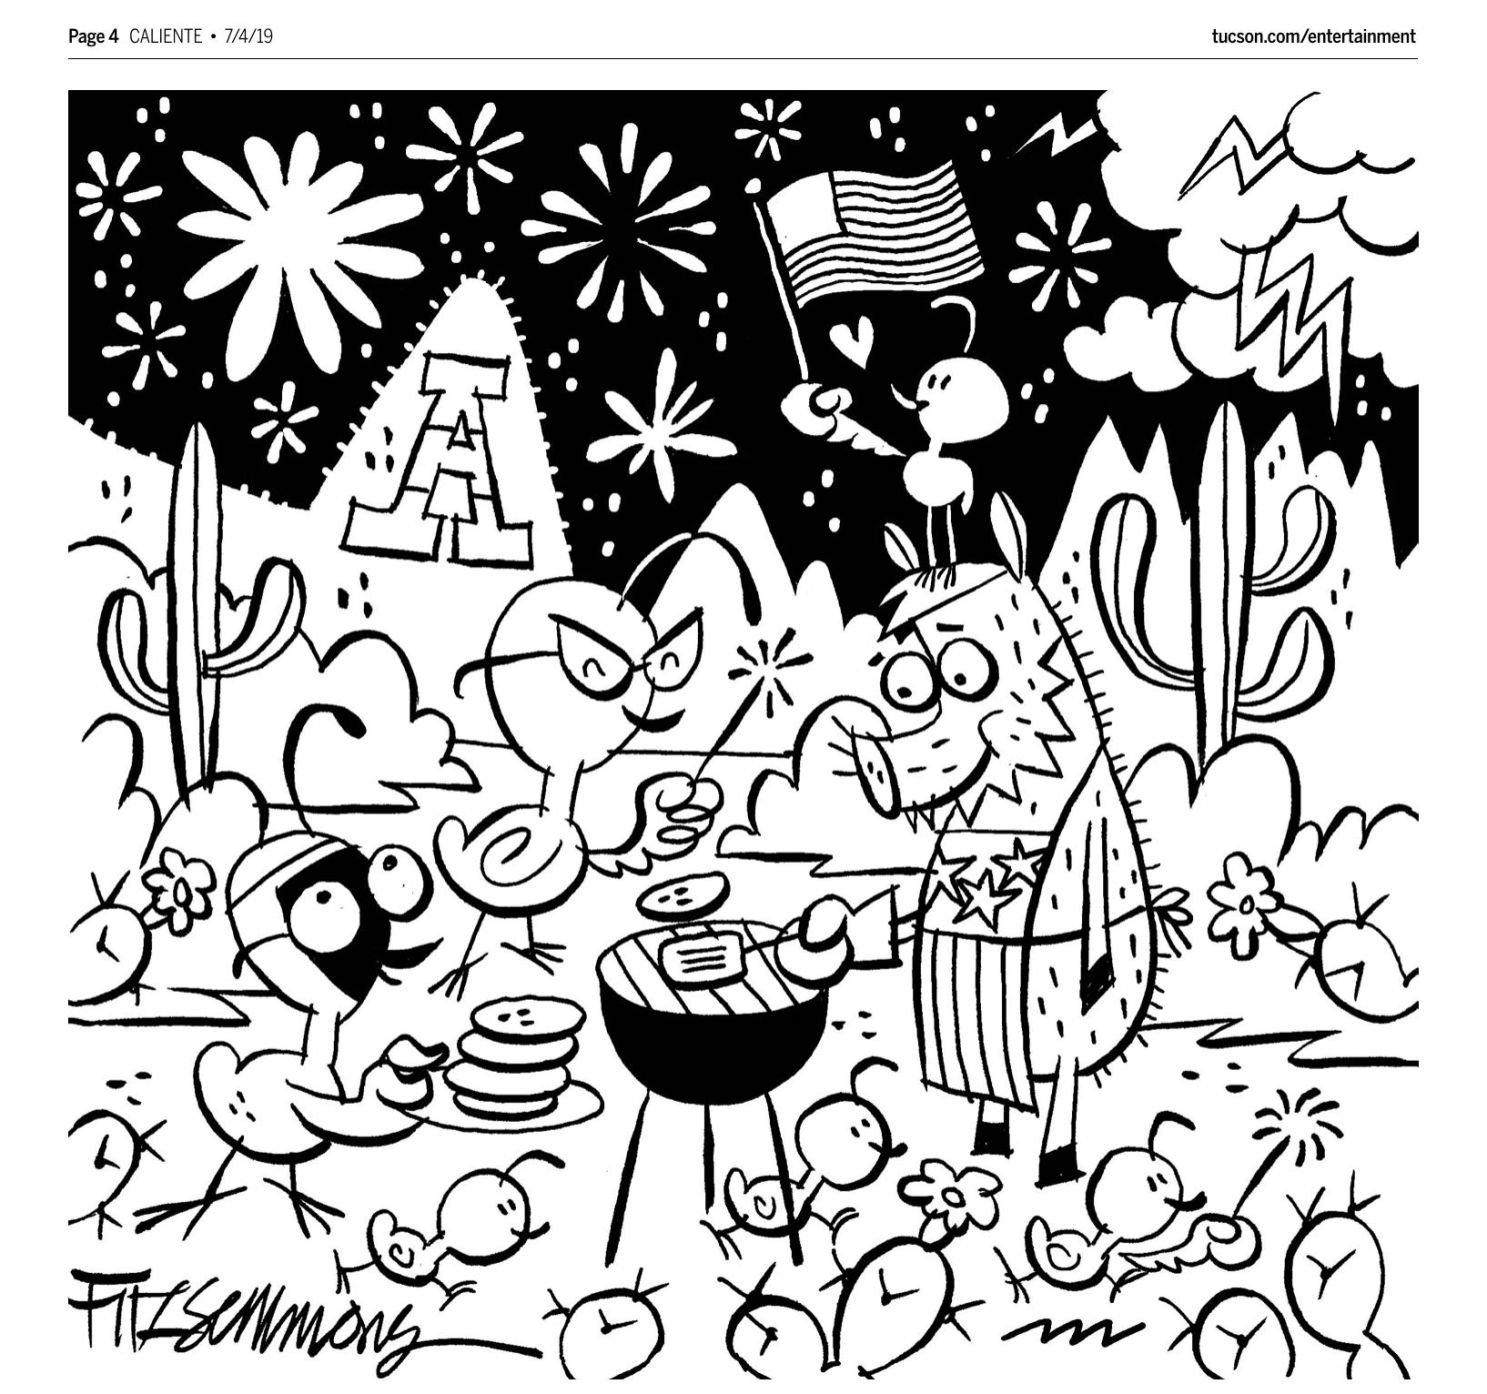 - Print Out These 12 Totally Adorable Tucson-themed Coloring Pages